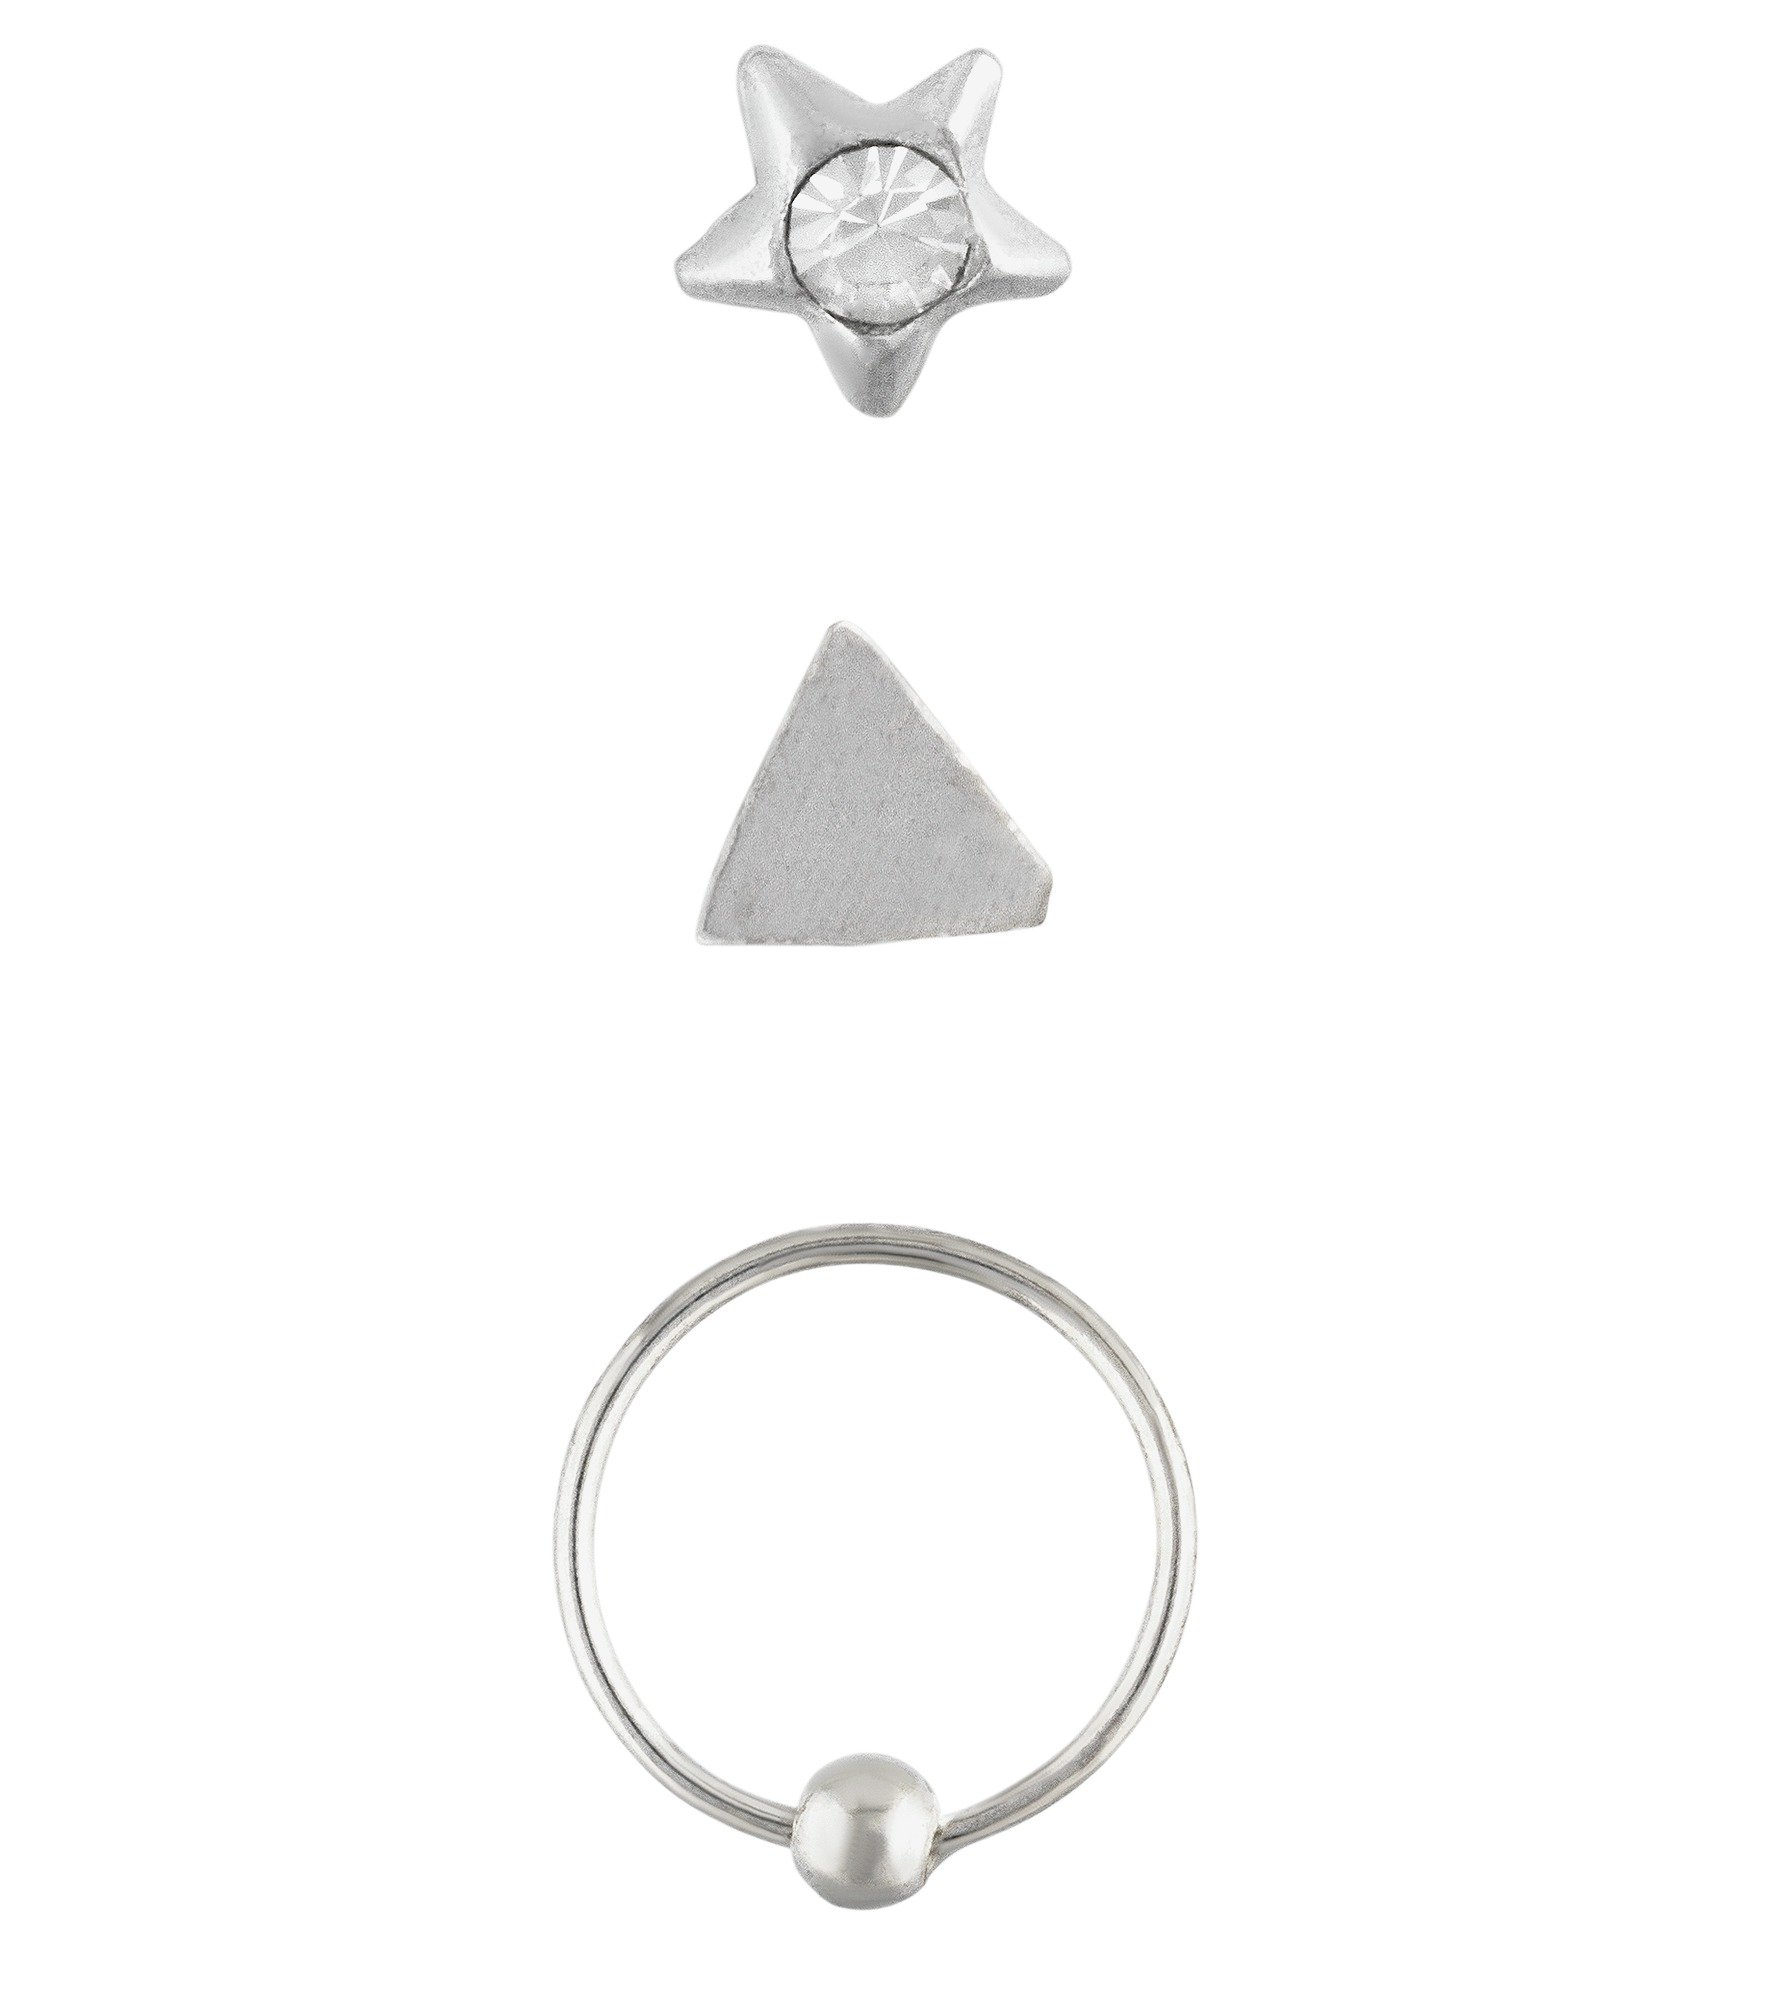 Buy My Body Candy Set 3 Silver Hoop Shapes Nose Studs at Argos